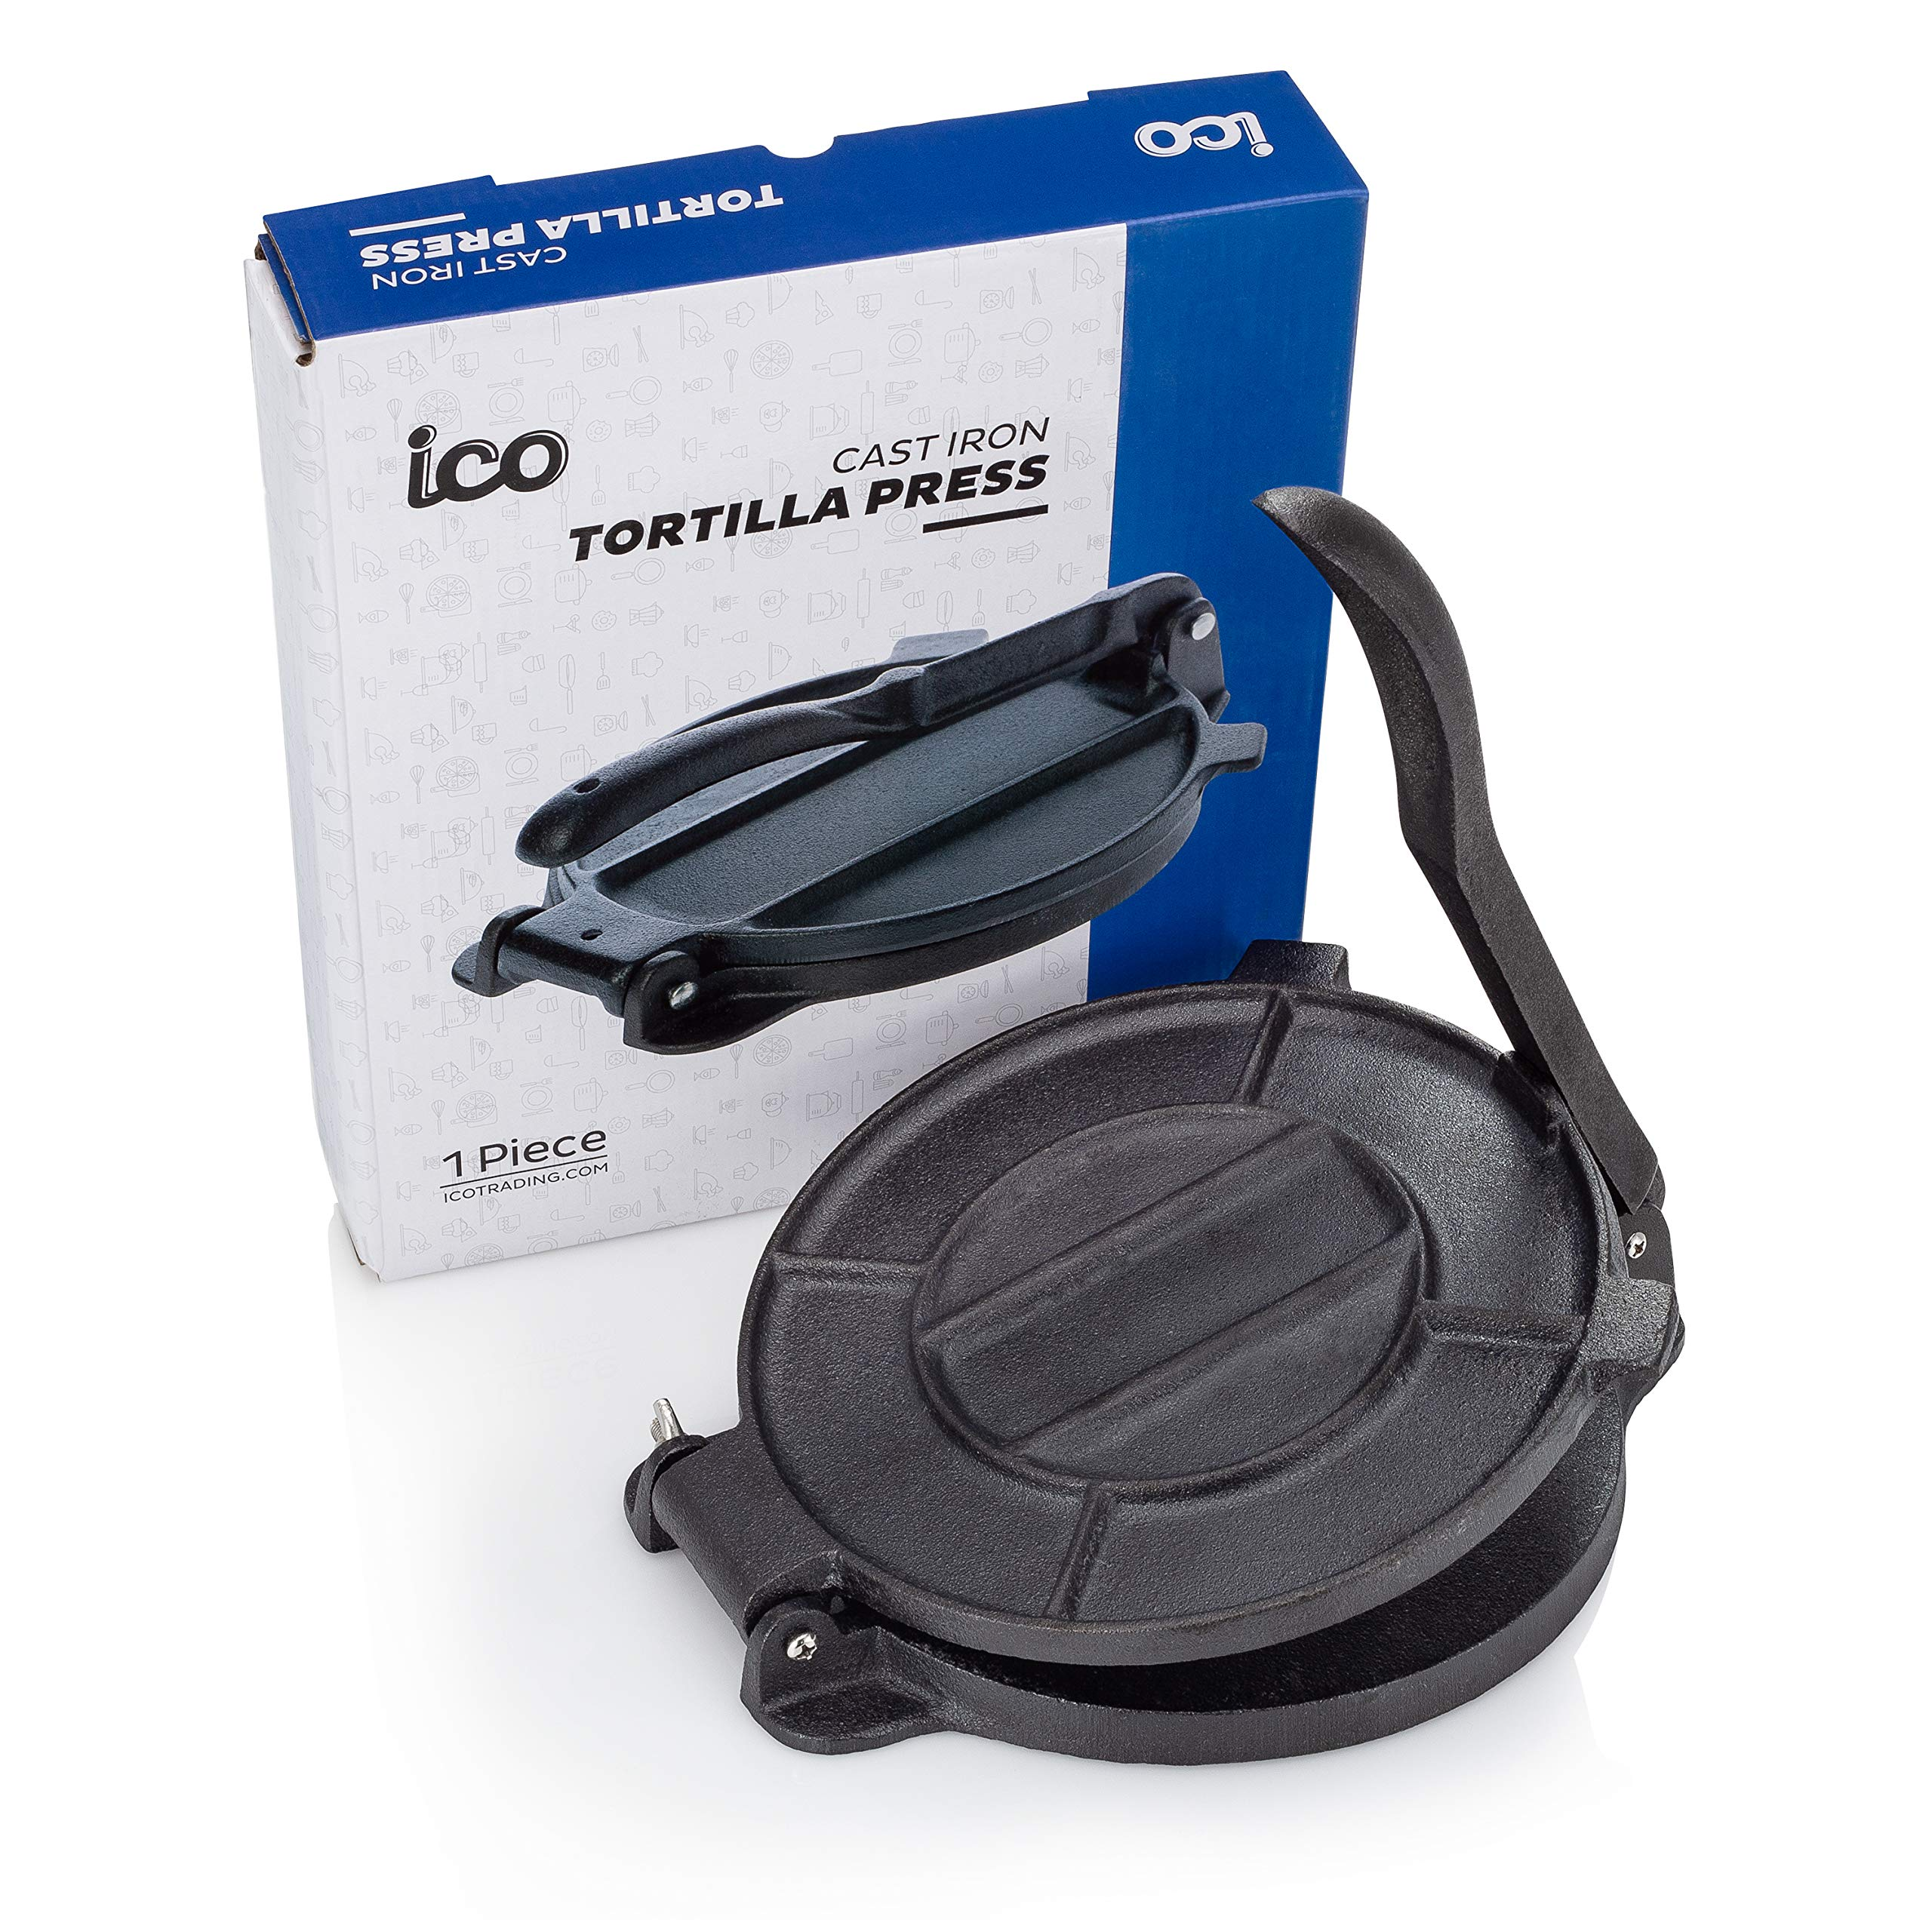 Cast Iron Tortilla Press, Tortilla, Roti, and Flatbread Maker (Pre-Seasoned) - makes fresh Corn or Flour Tortillas for grilling by Impeccable Culinary Objects (ICO)